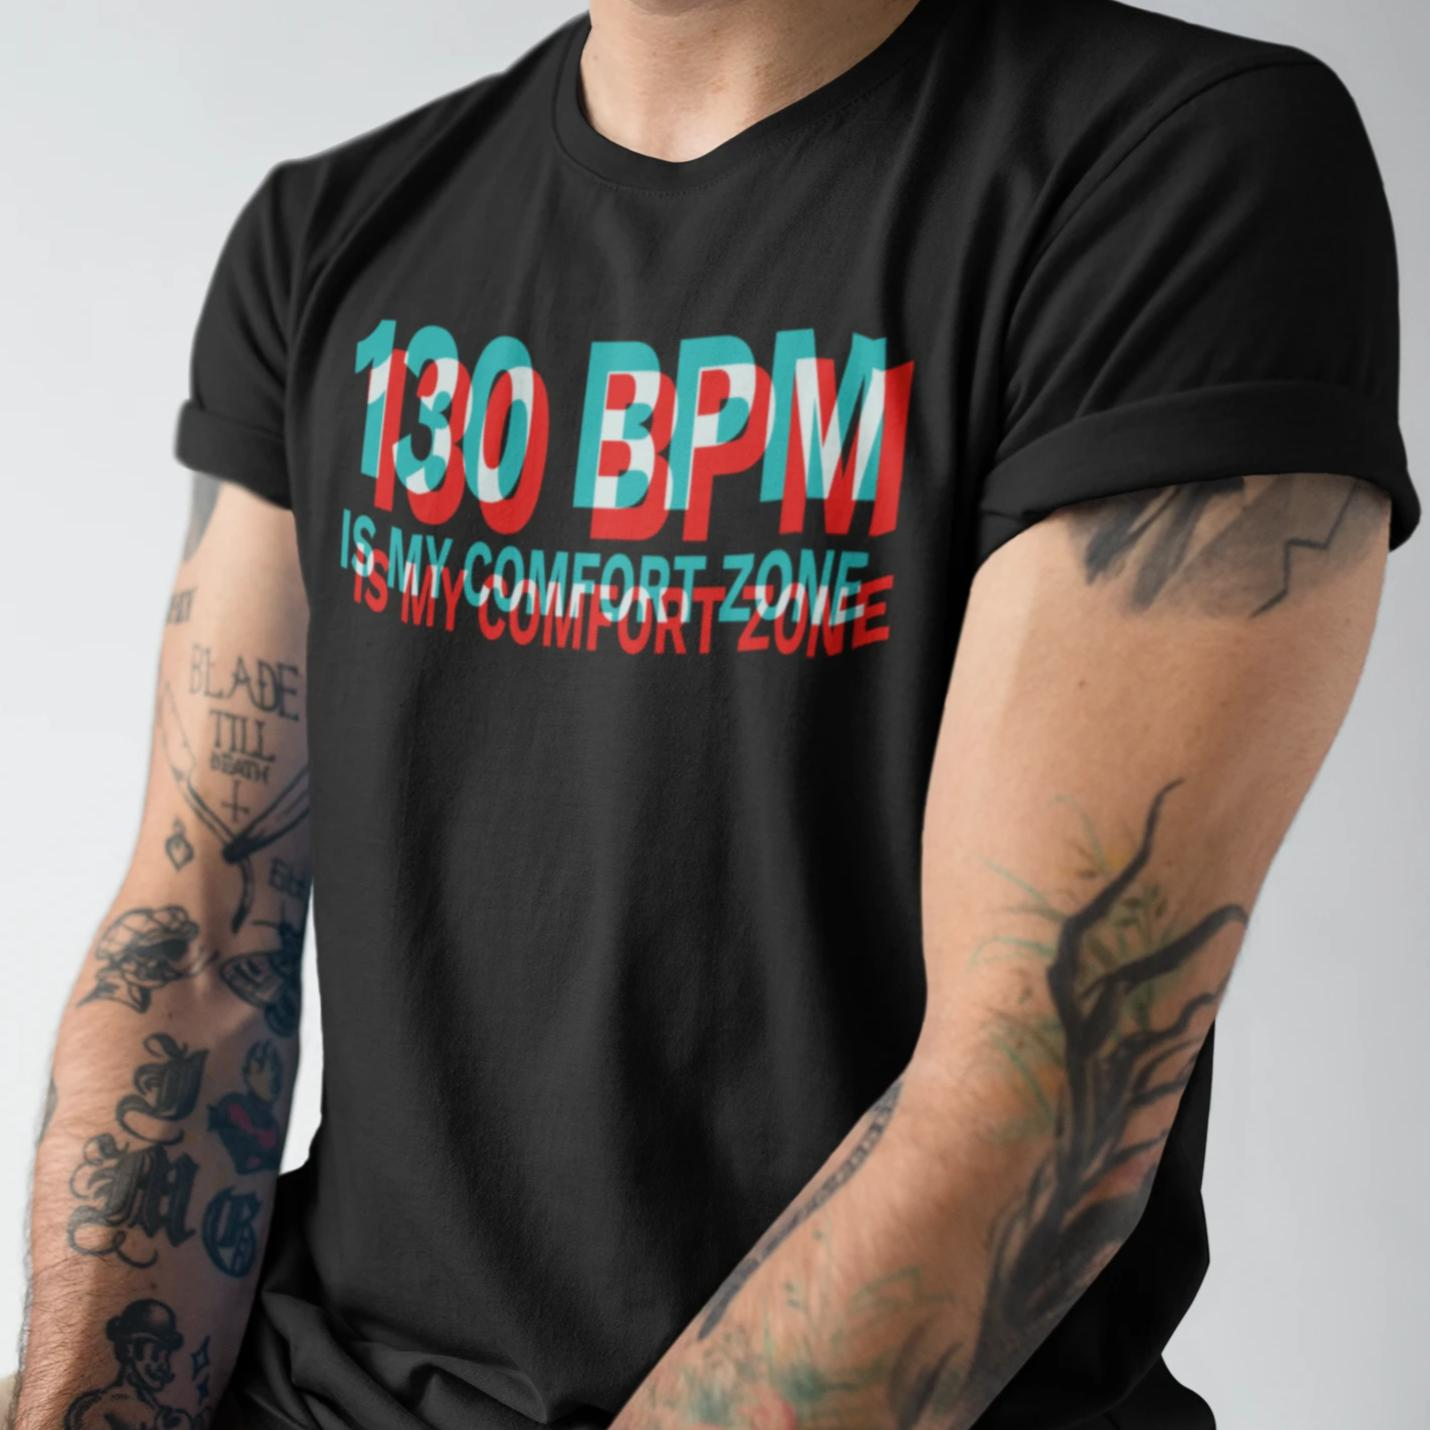 130 BPM - Rave On!® - Herren Long Tee Men Long Tee - Rave On!® der Club & Techno Szene Shop für Coole Junge Mode Streetwear Style & Fashion Outfits + Sexy Festival 420 Stuff